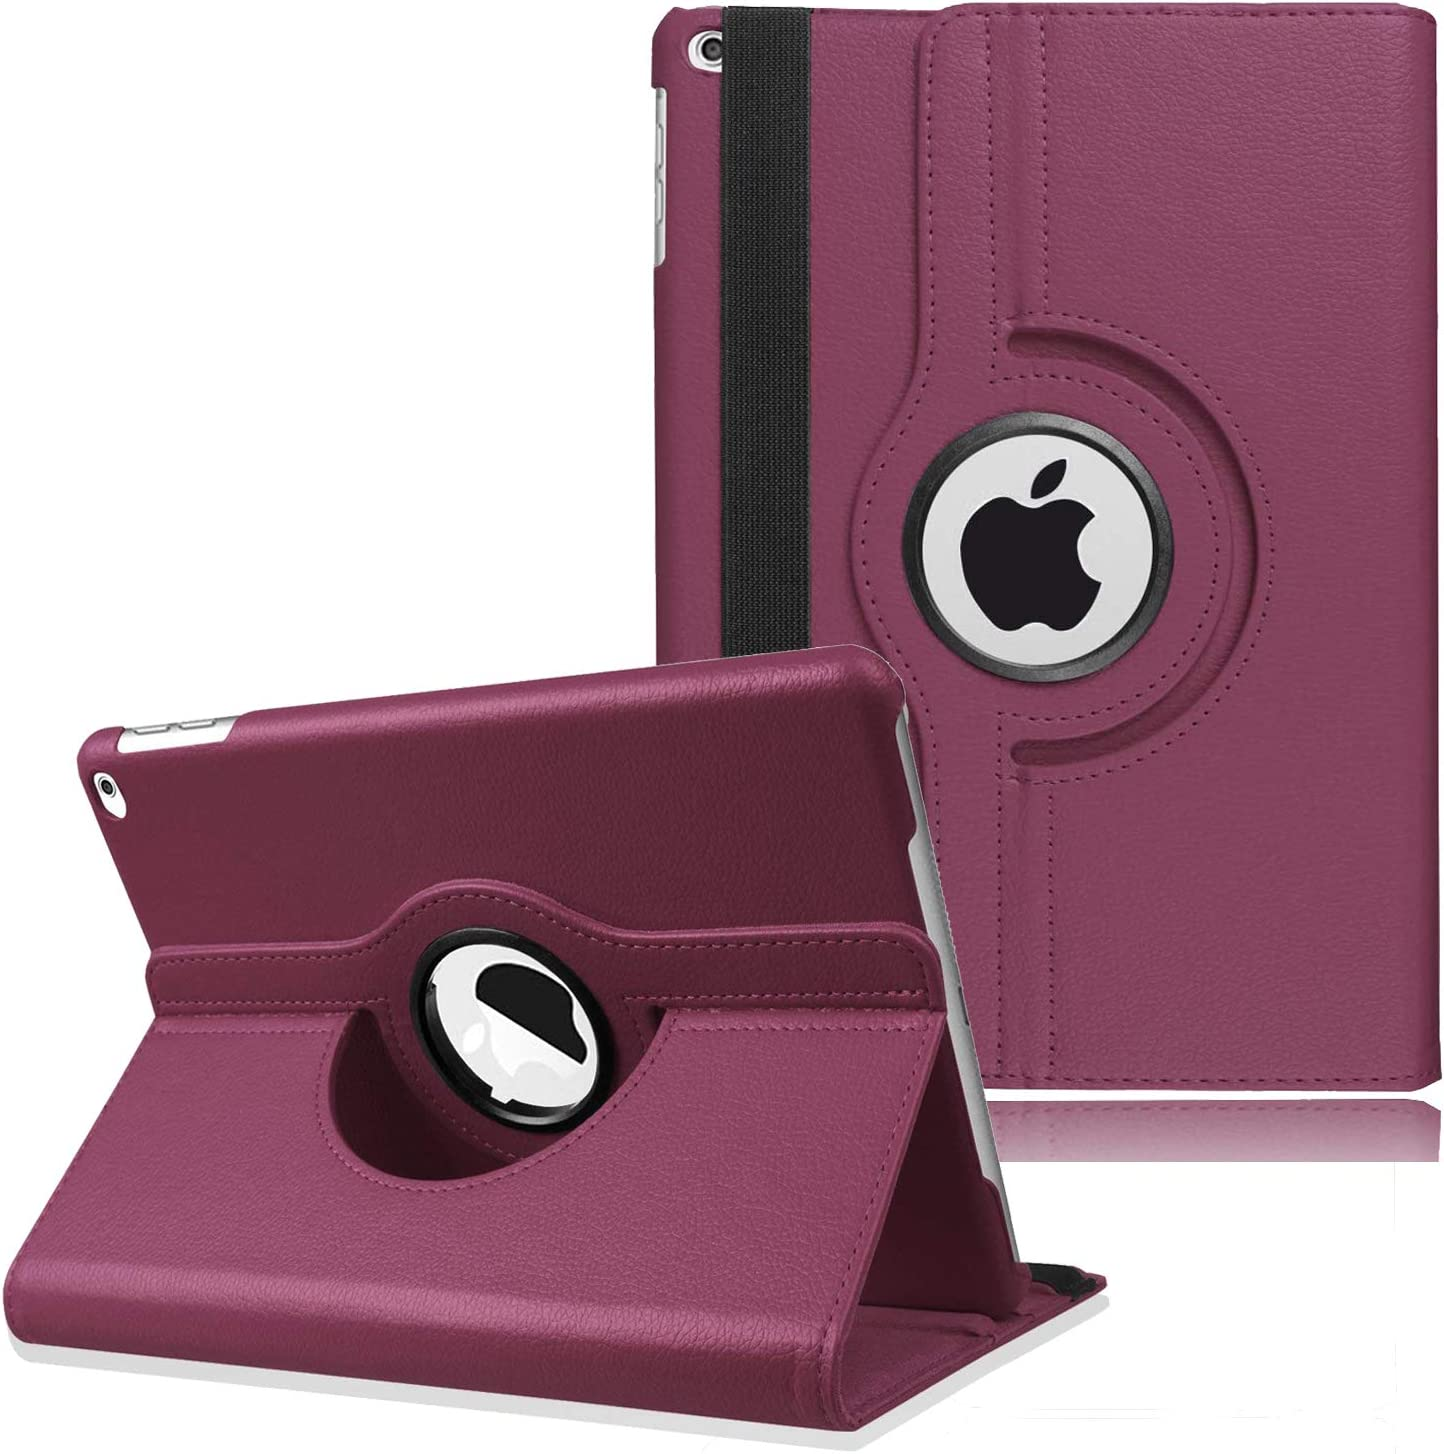 "New iPad 2017 9.7"" / iPad Air 2 Leather Case,360 Degree Rotating Stand Smart Cover with Auto Sleep Wake for Apple iPad Air or New iPad 9.7 Inch 2017 Tablet (Purple)"